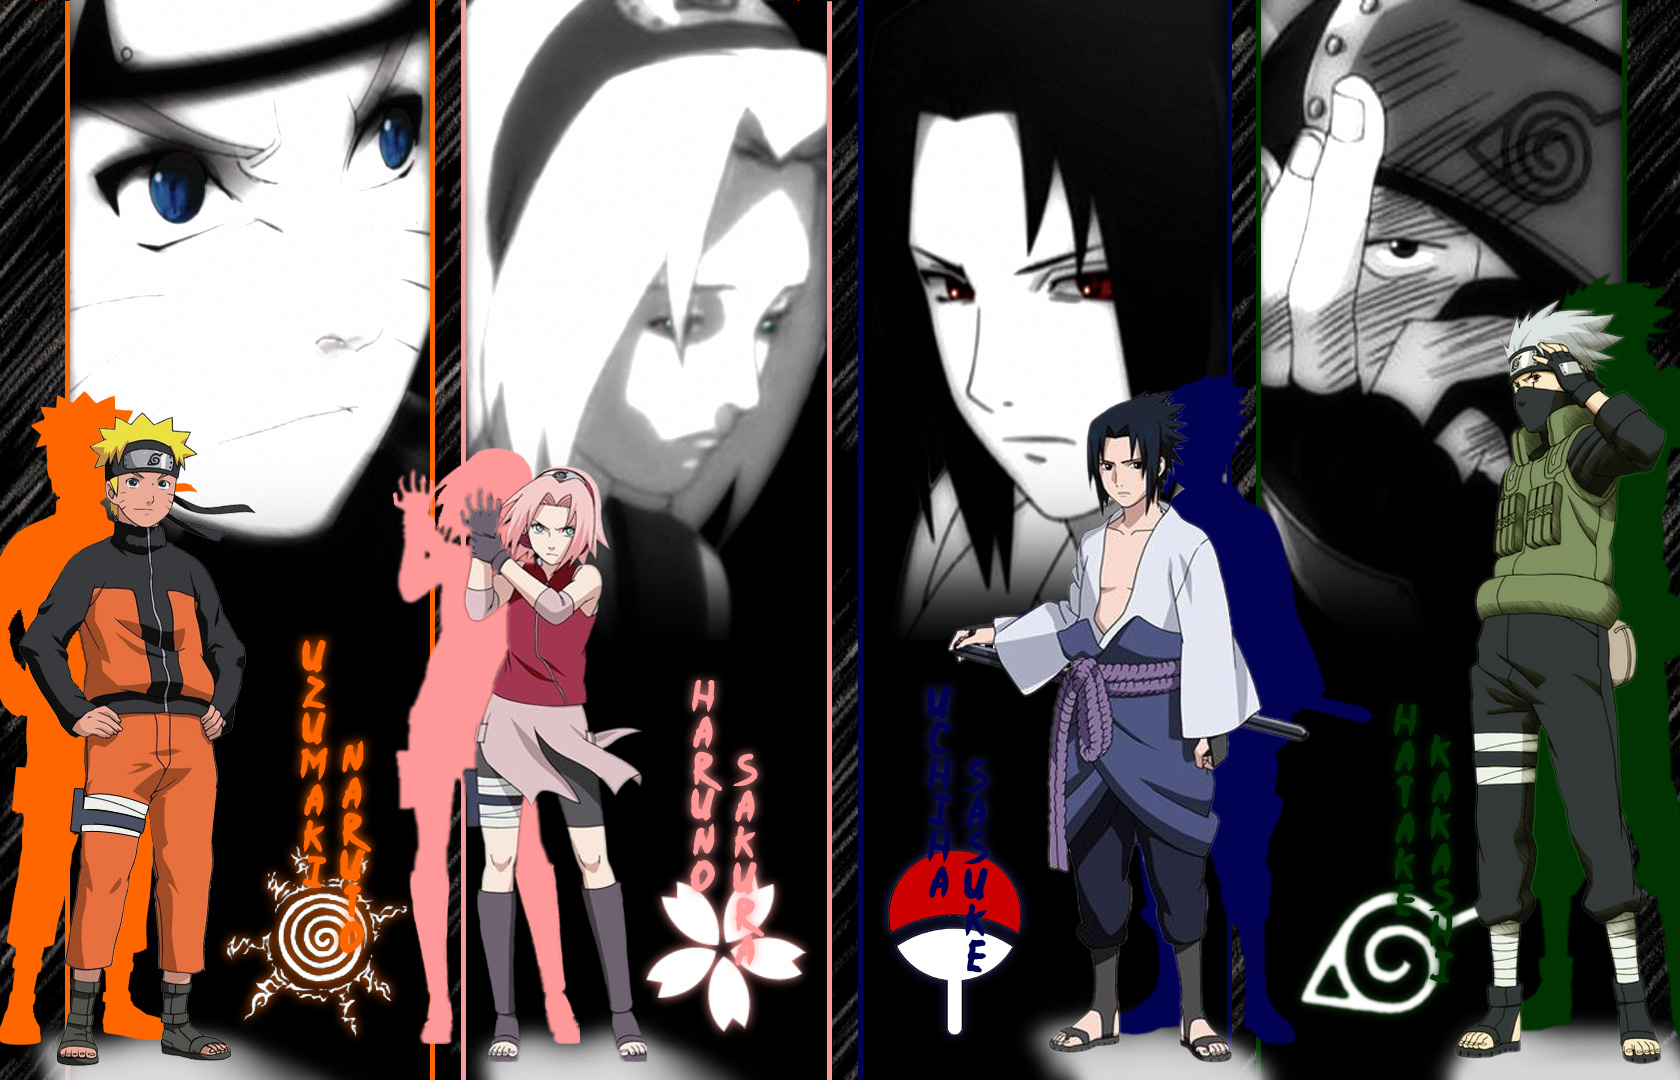 team 7 - naruto - wallpaper #68622 - zerochan anime image board